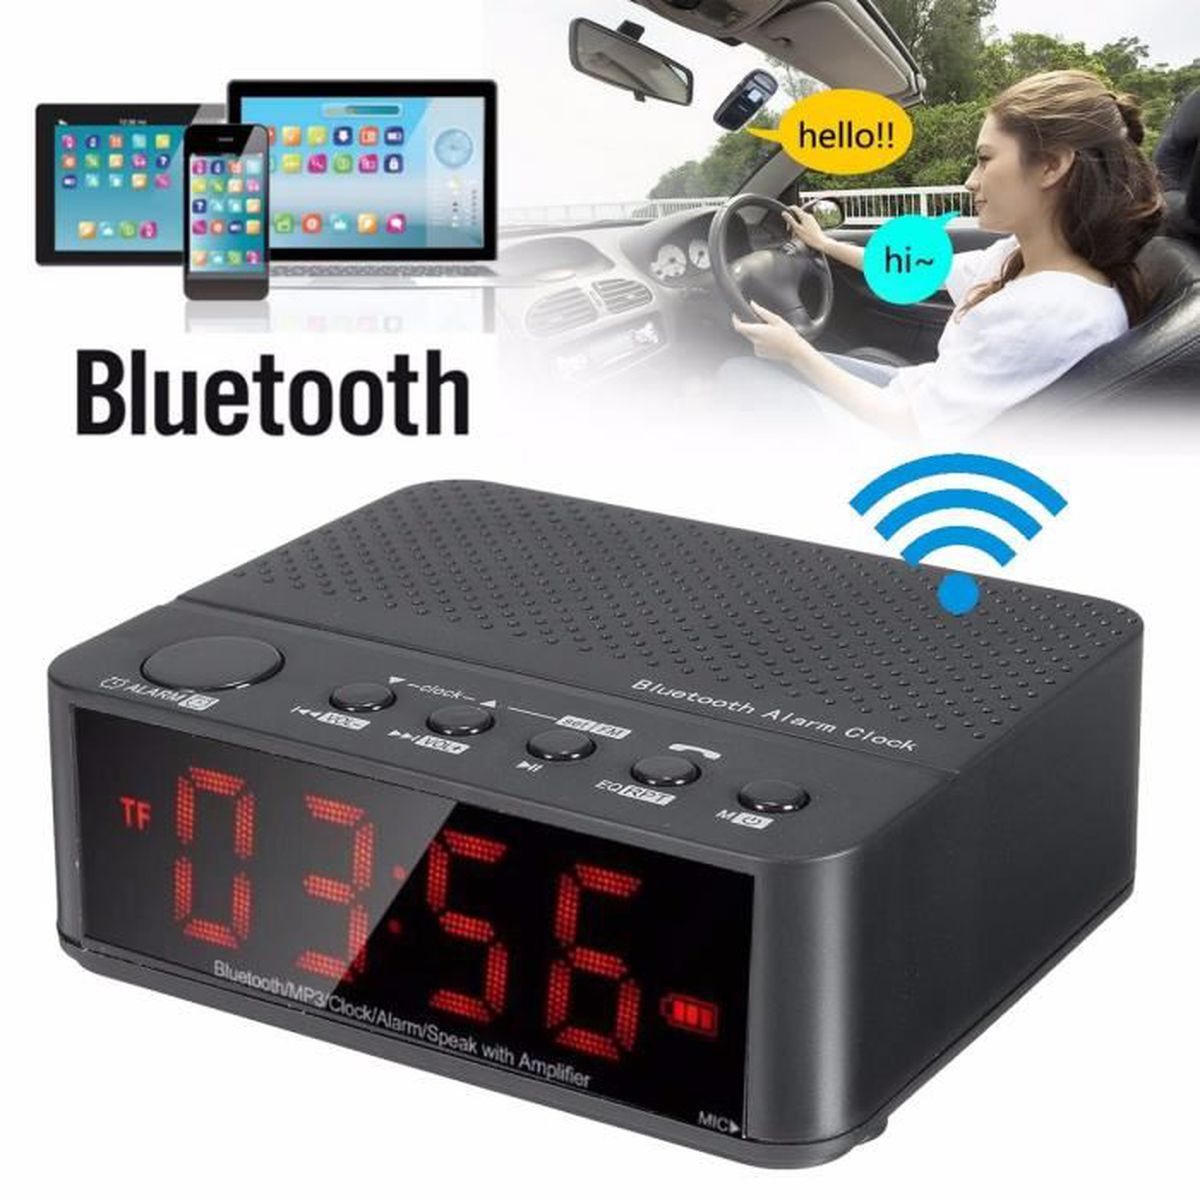 enceinte bluetooth horloge achat vente enceinte bluetooth horloge pas cher les soldes sur. Black Bedroom Furniture Sets. Home Design Ideas